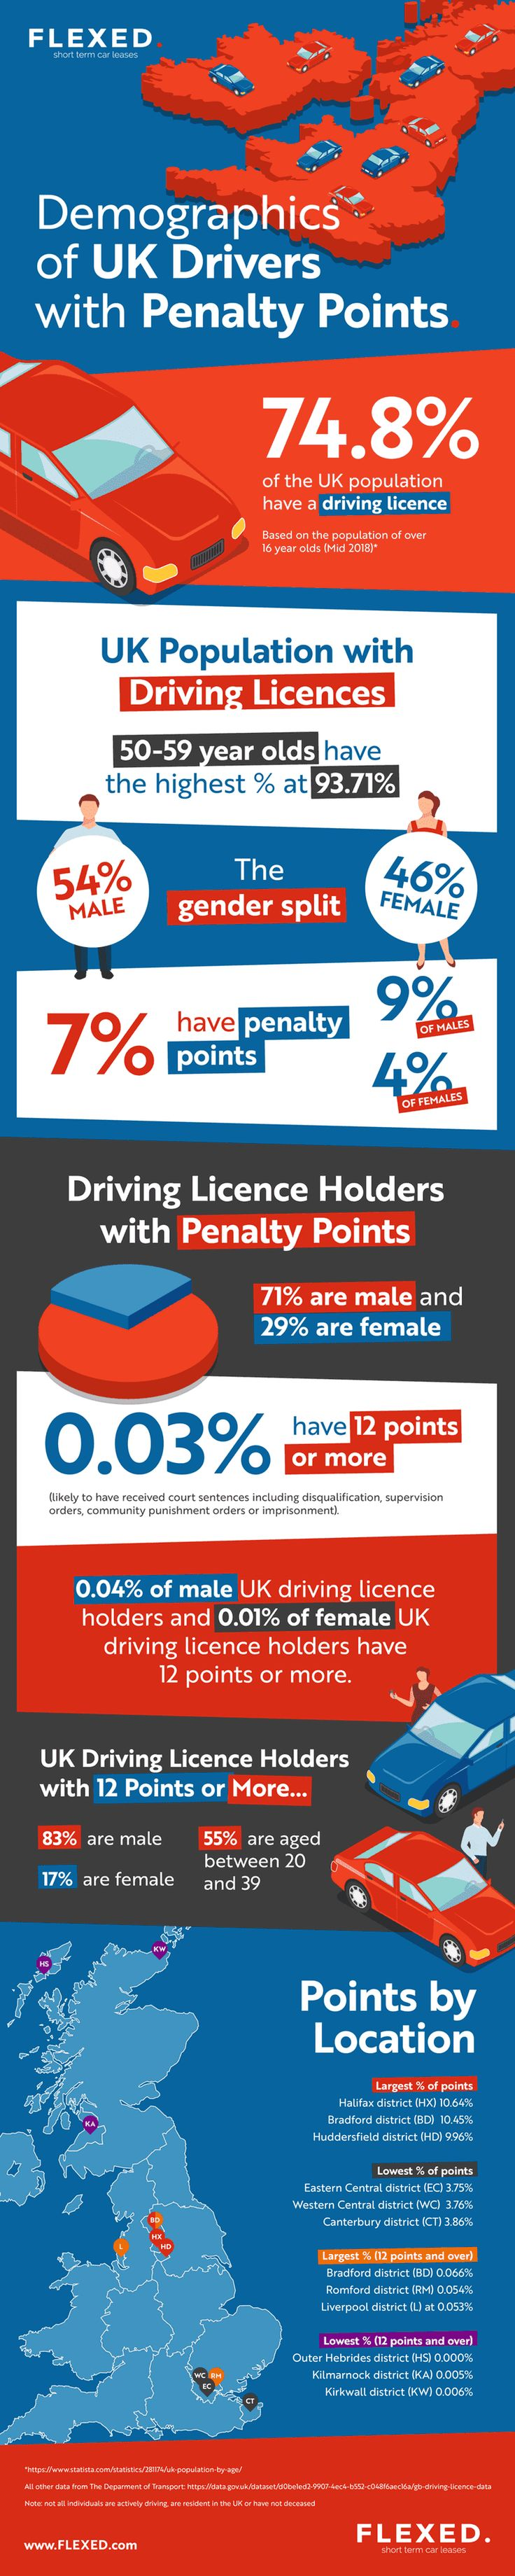 Driver penalty points Who is most likely to have them?